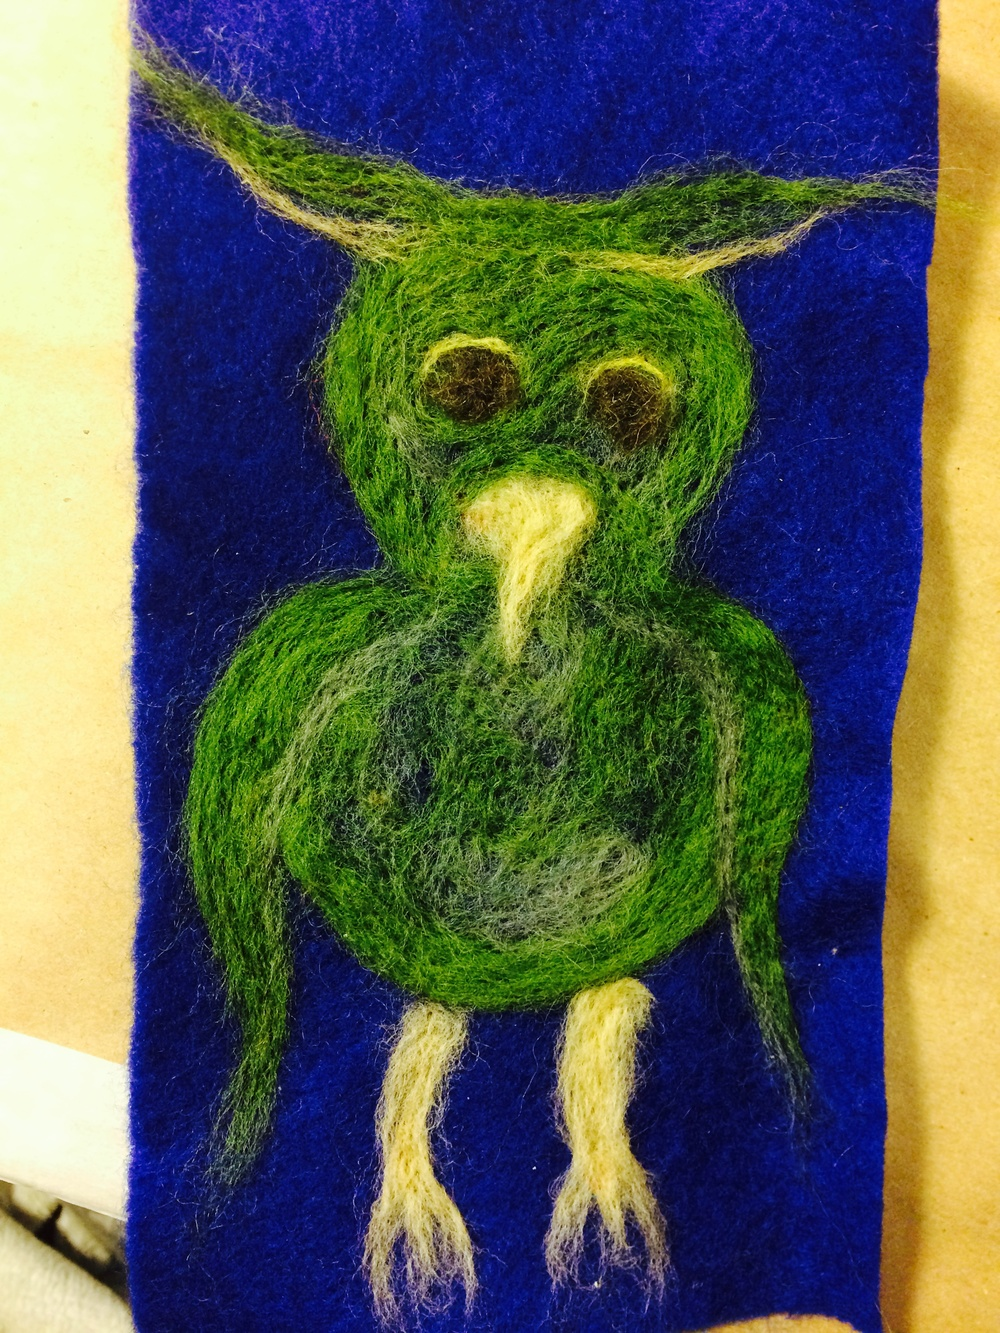 And a sweet owl. What was so lovely in particular was that our regular participants were offering encouragement and tips while we worked with the after school crowd.